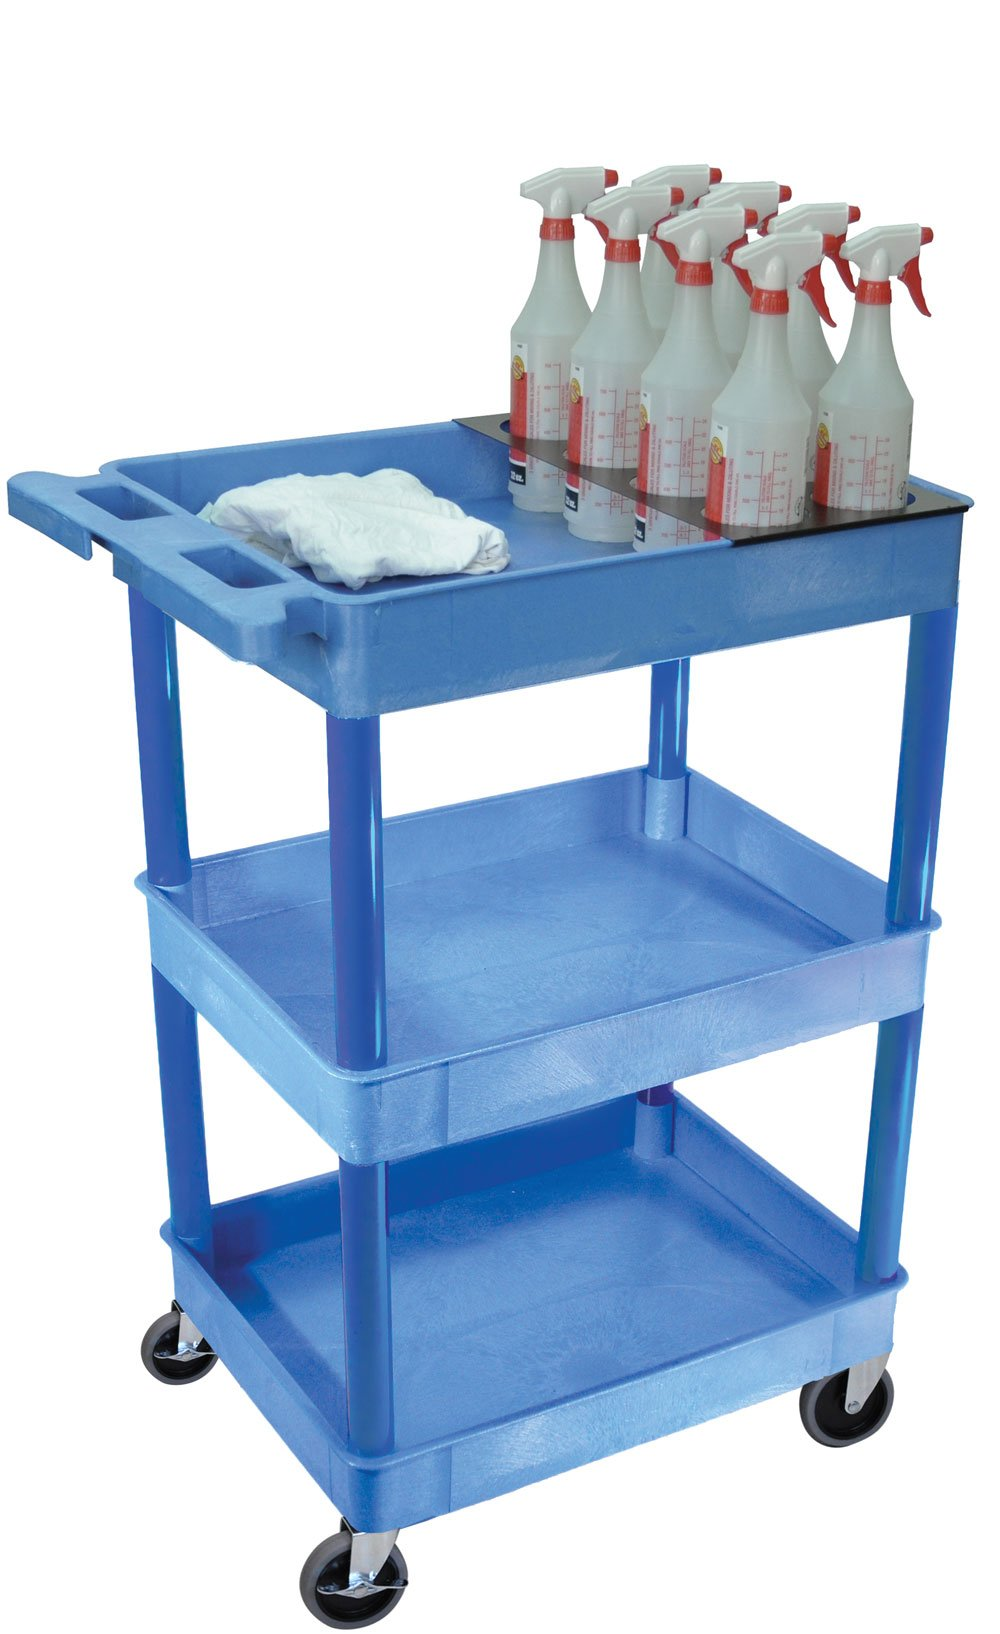 LUXOR BUSTC111BU Tray Shelf Carts, Blue